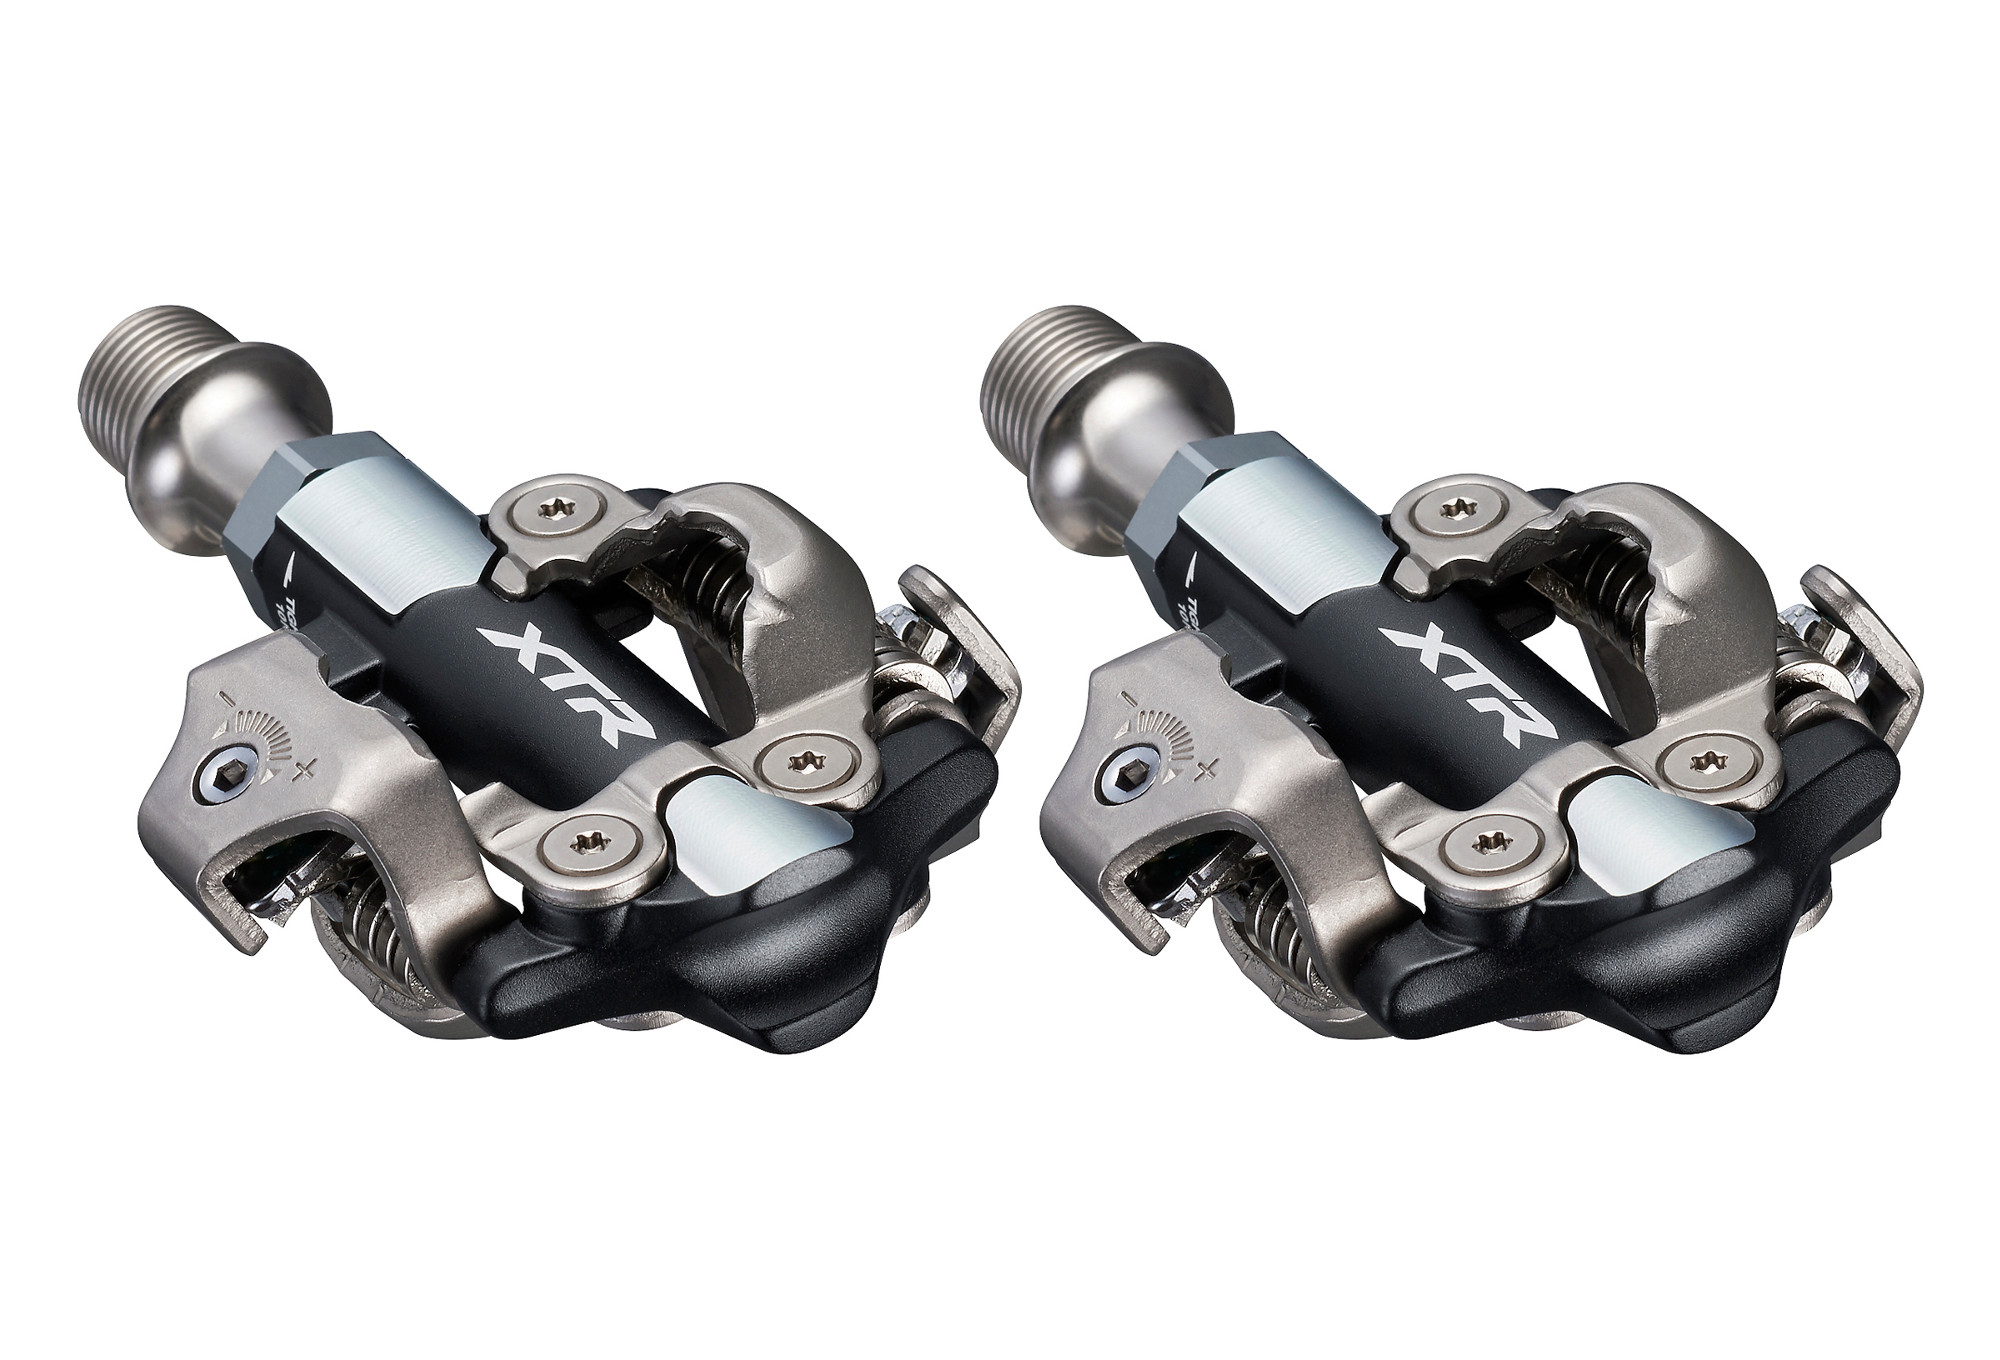 cdb28a1c276 Shimano XTR PD-M9100-S1 Race SPD Clipless MTB Pedals (Short axles ...